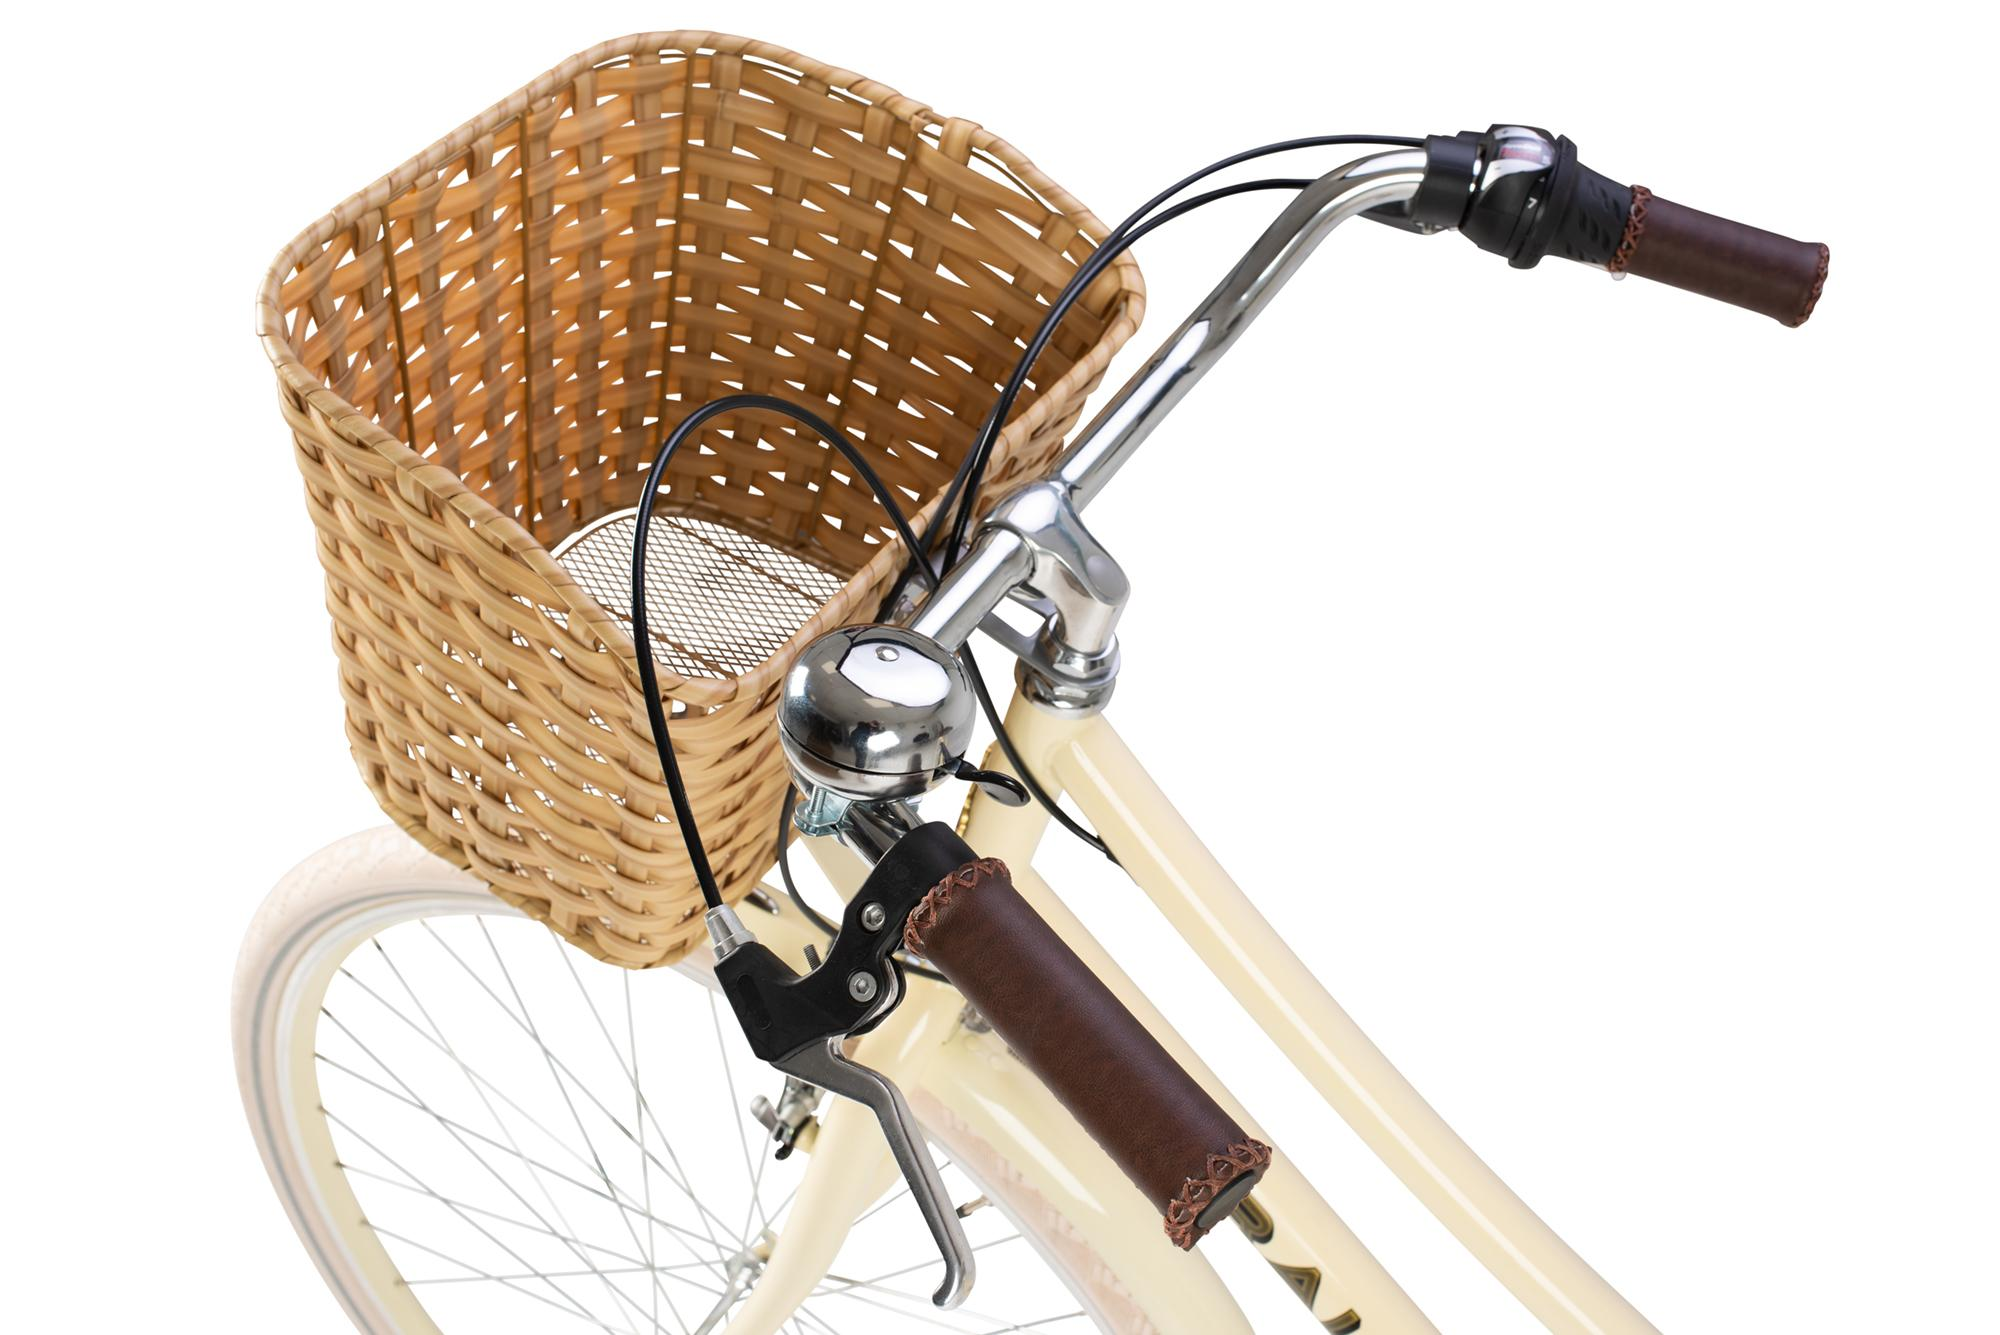 Basket and handlebars on the Raleigh Sherwood classic ladies bike